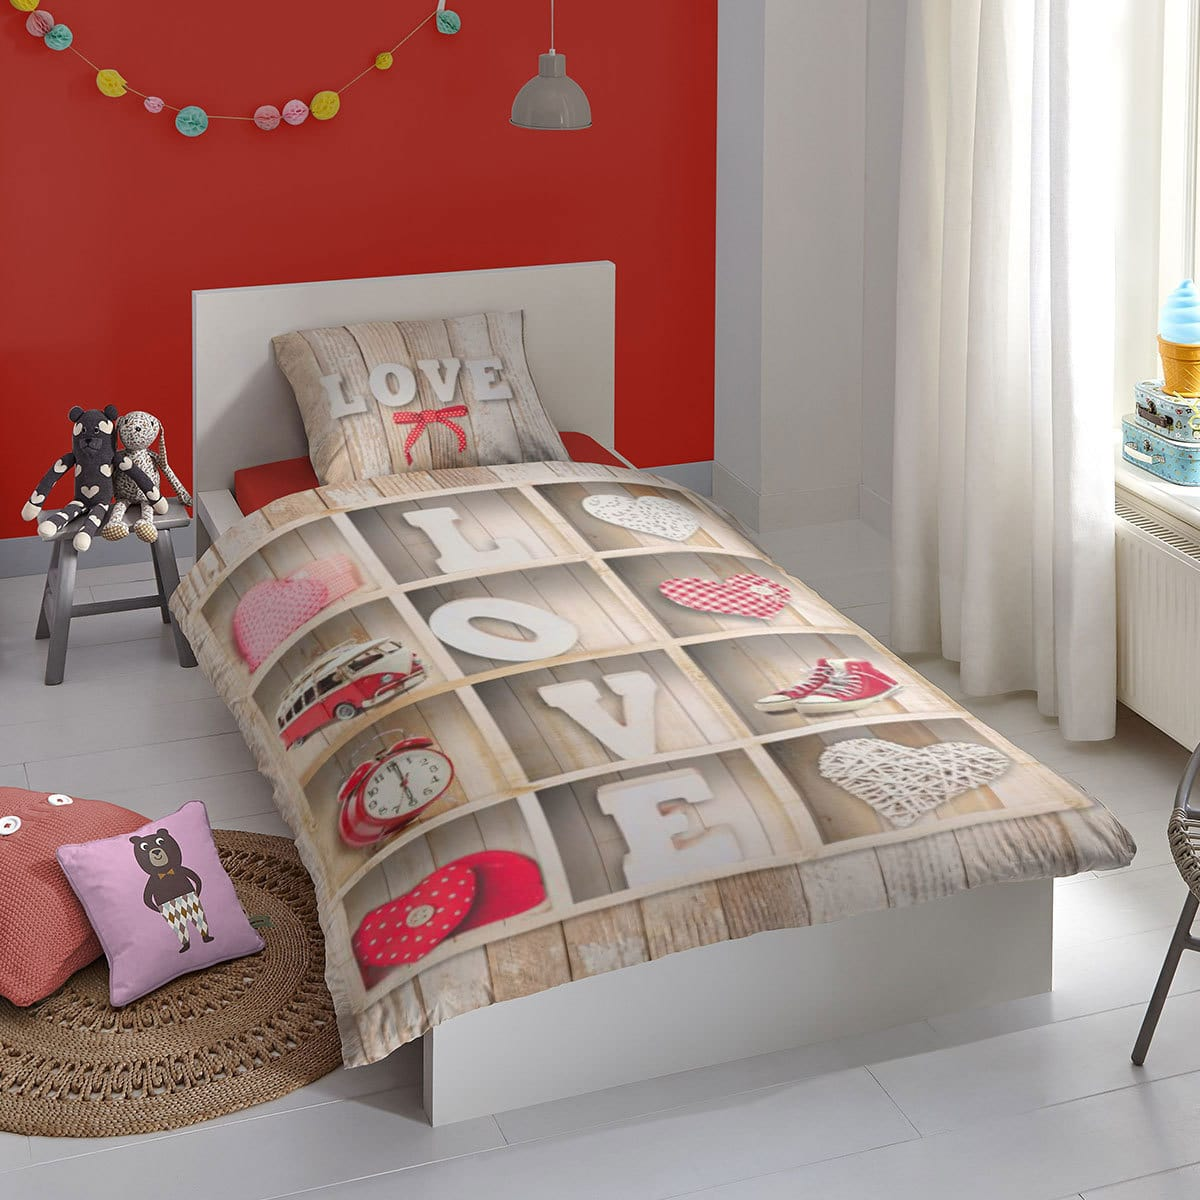 good morning flanell bettw sche love multi g nstig online kaufen bei bettwaren shop. Black Bedroom Furniture Sets. Home Design Ideas